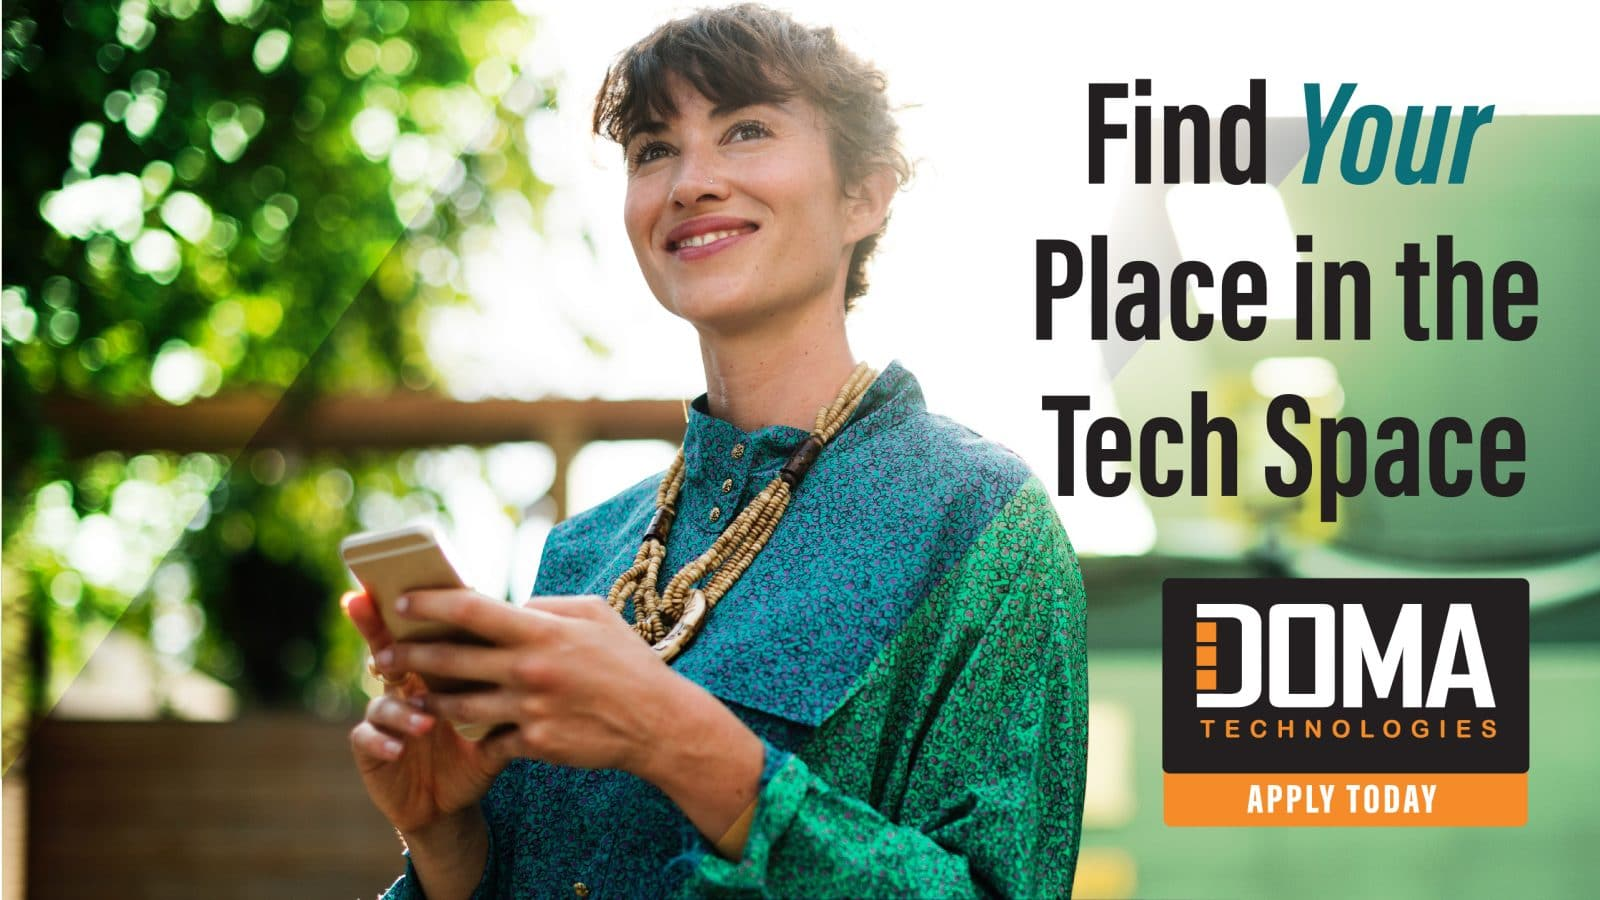 Find your place in the Tech Space with DOMA Careers